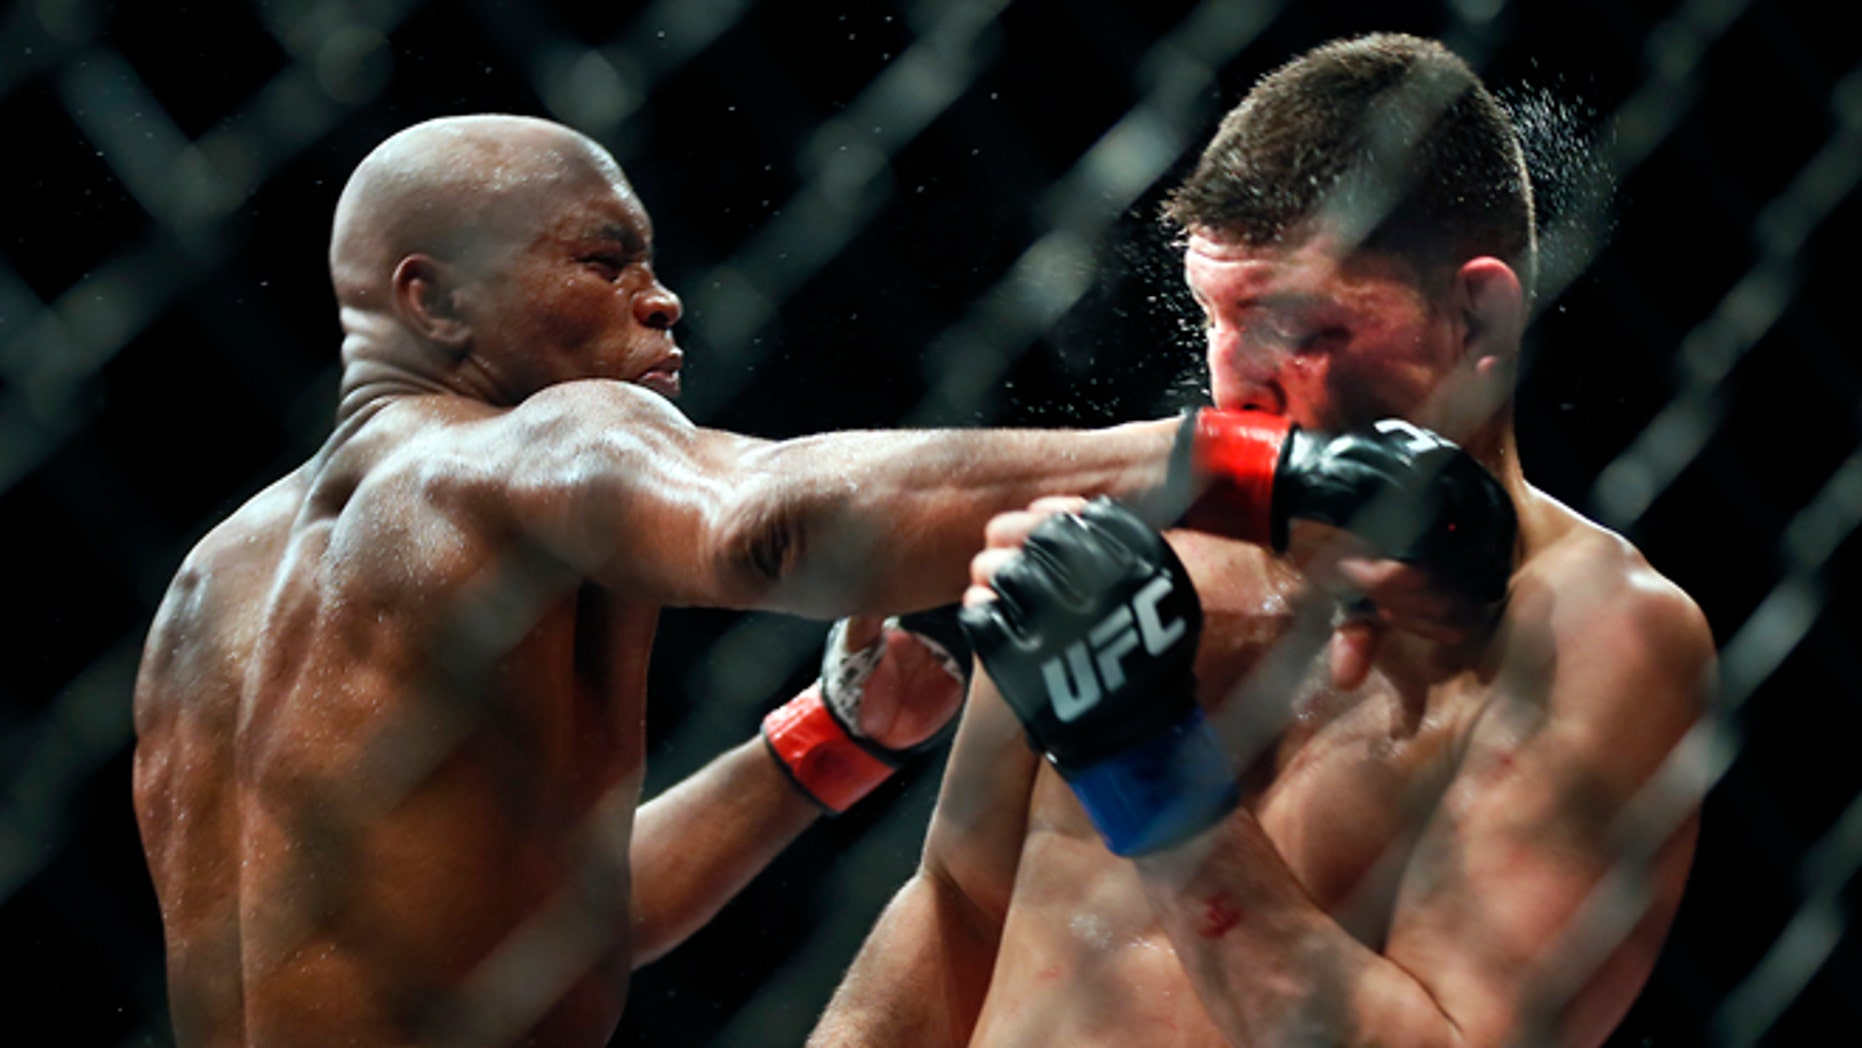 Middleweight Anderson Silva draws a fist across the face of Nick Diaz during their fight at the MGM Grand Garden Arena in Las Vegas on Saturday, Jan. 31, 2015. (AP Photo/Las Vegas Sun/LE Baskow)